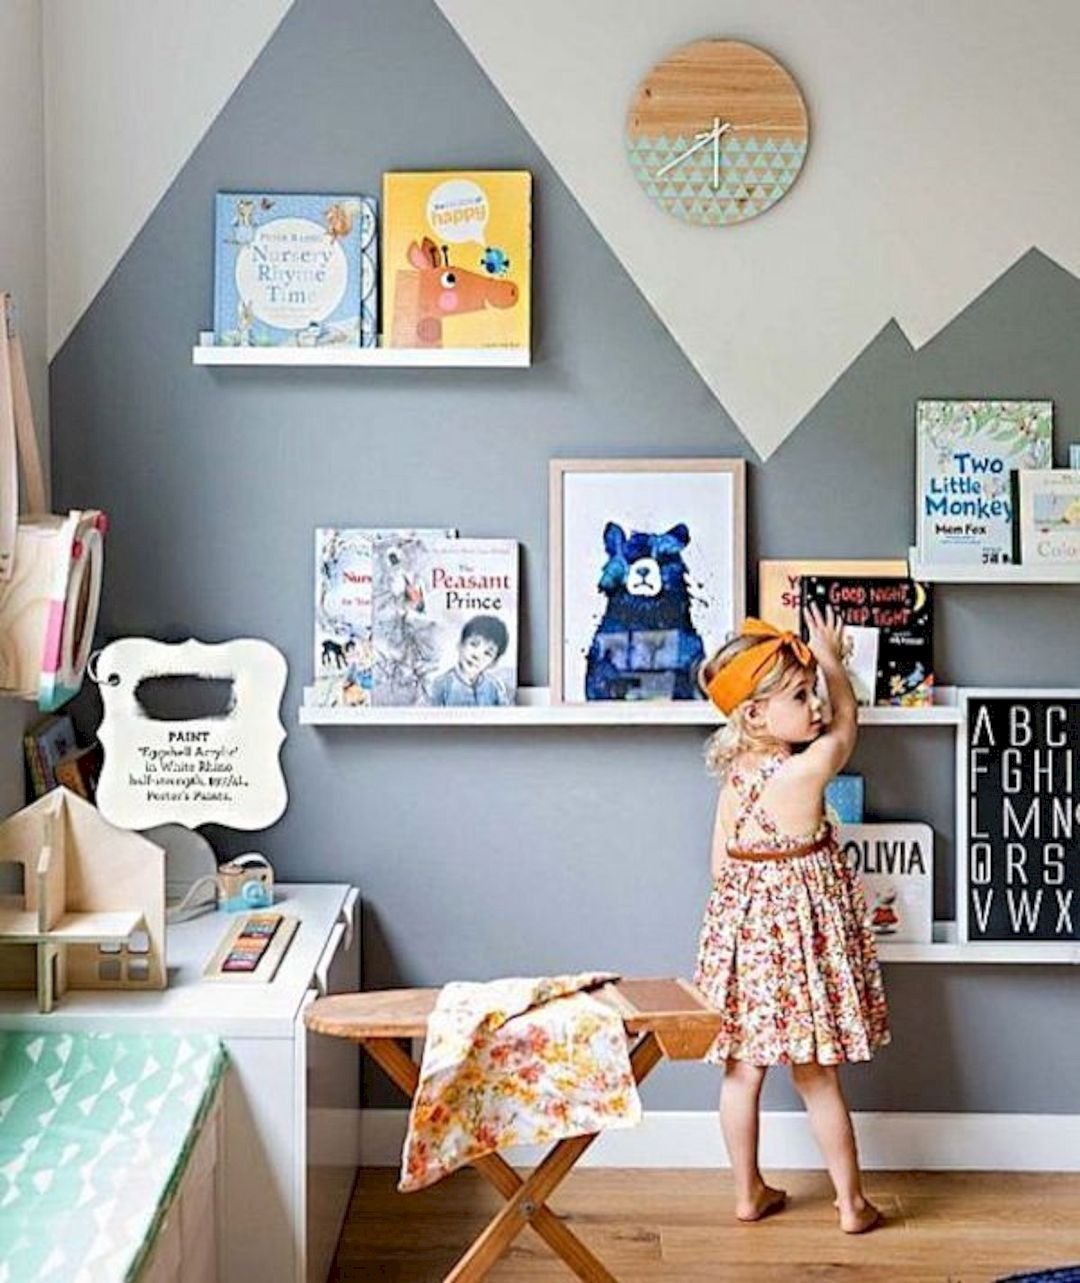 Best Charming Kid's Room Decor Ideas   Room decor, ed bedrooms ... on hide television design ideas, bedroom designs, western bedroom ideas, bedroom wall art, shelving ideas, bedroom shelf for candles, storage for small bedrooms ideas, beautiful bedroom ideas,